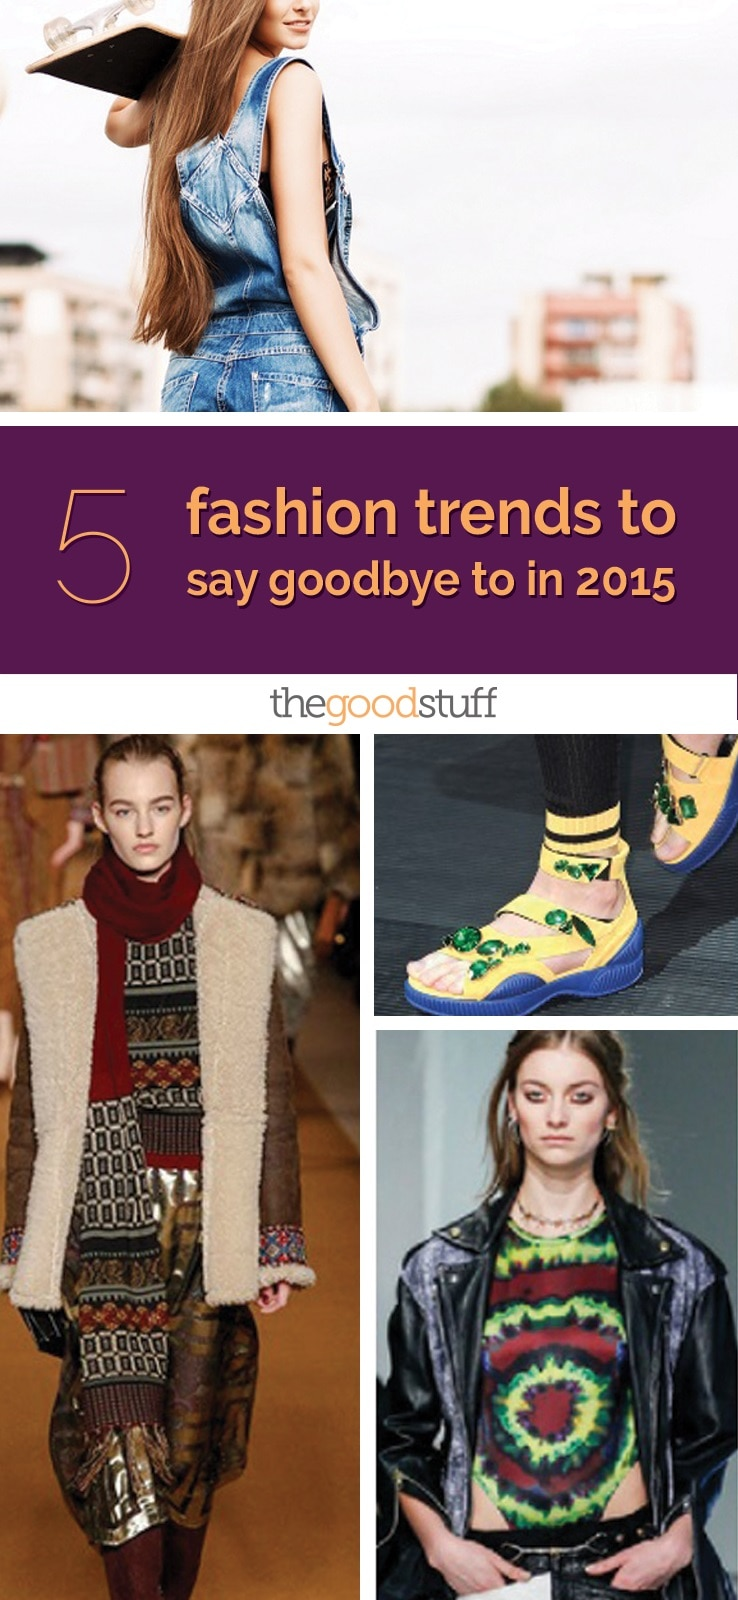 style-trends-say-goodbye-in-2015